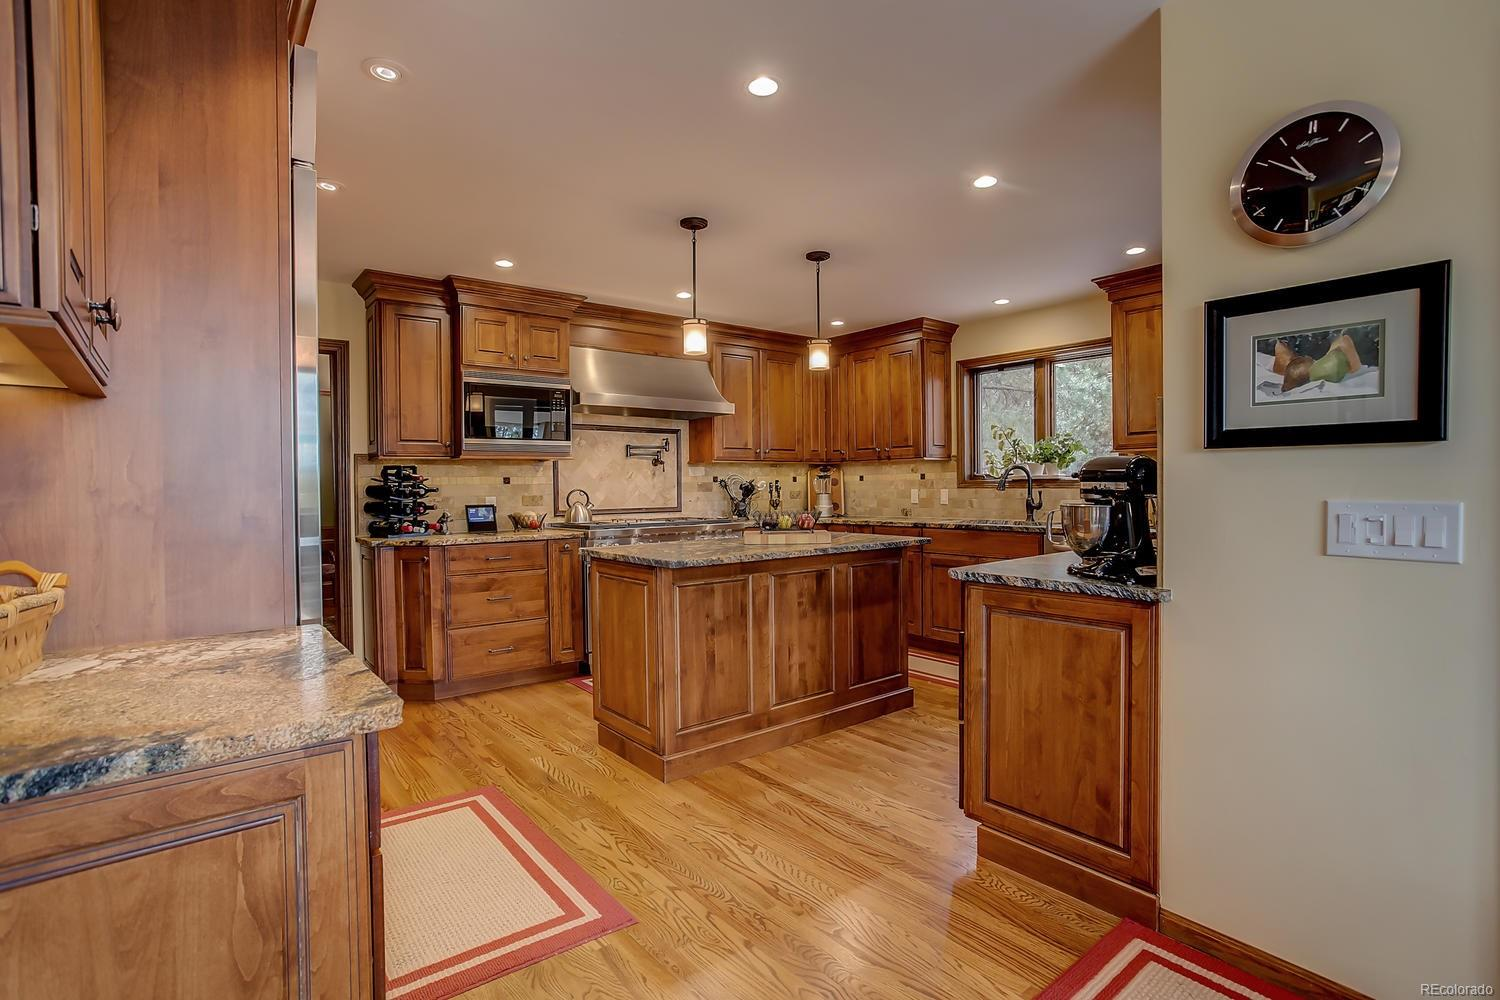 KITCHEN WITH NEW TOP OF THE LINE APPLIANCES